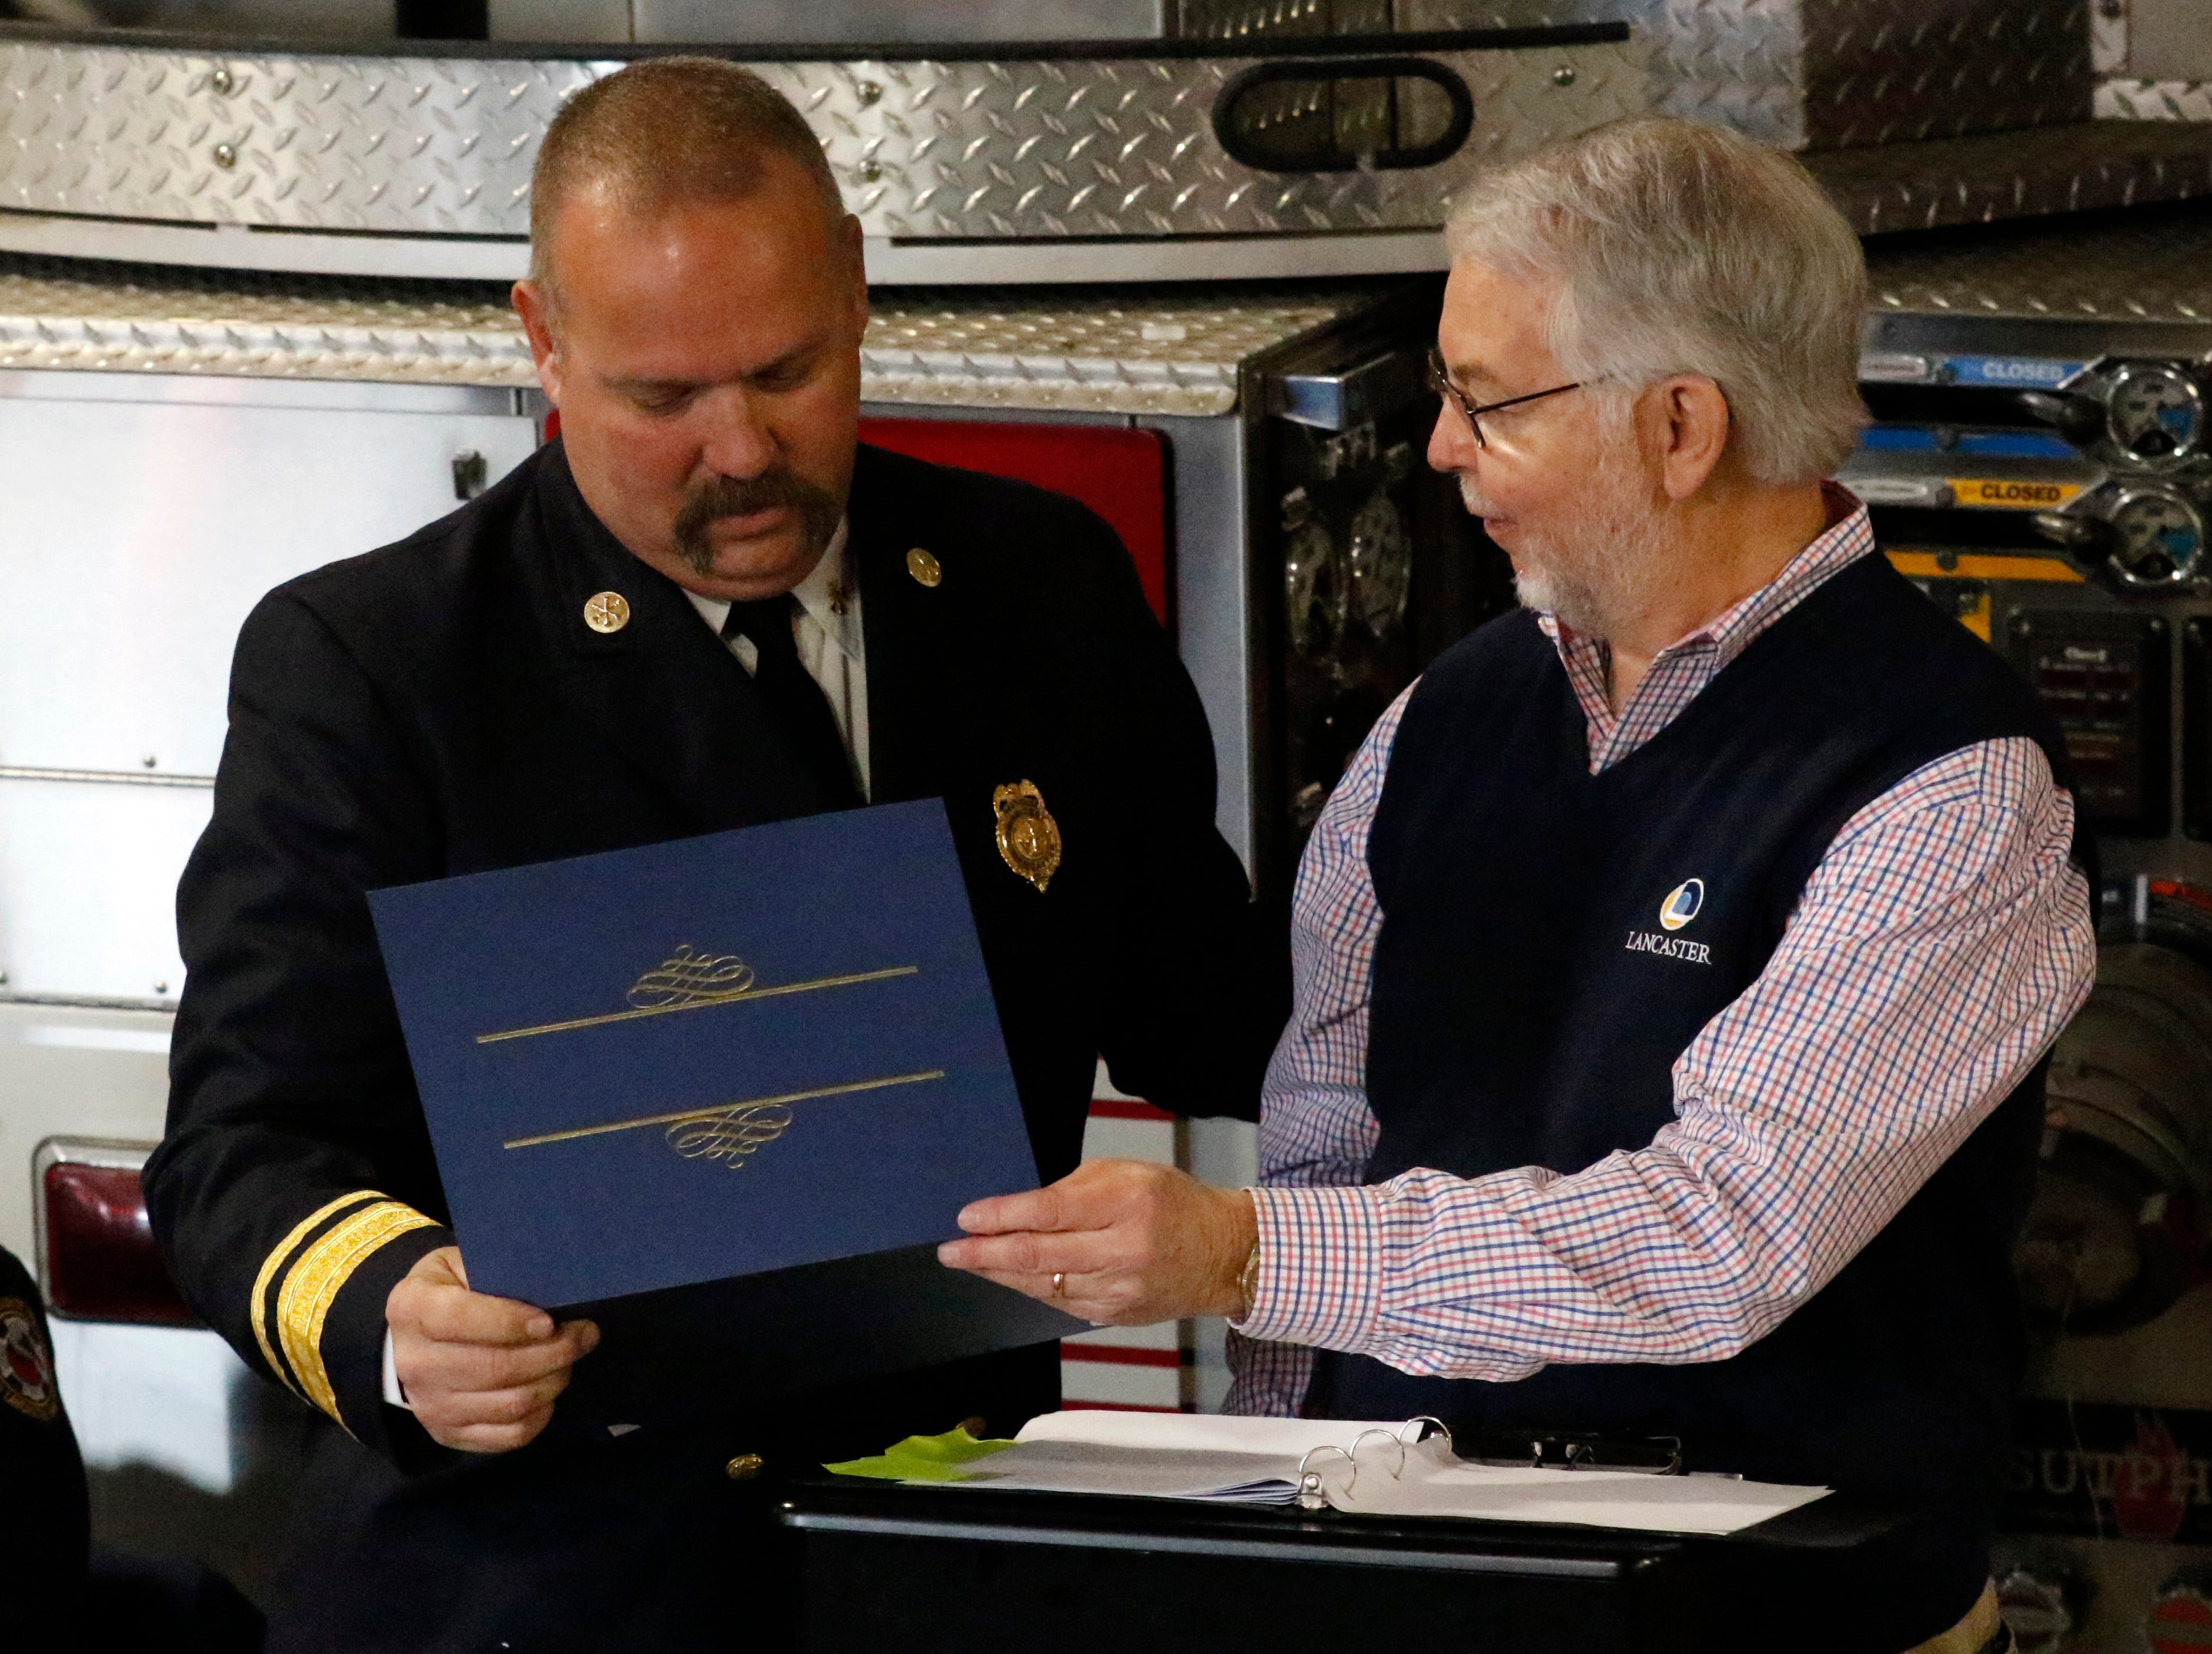 Lancaster Mayor David Scheffler, right hands retiring Lancaster Assistant Fire Chief Jack Mattlin a commendation at a retirement and promotion ceremony Friday afternoon, Feb. 15, 2019, at Engine House One in Lancaster. Mattlin retired after 28 years with the department.